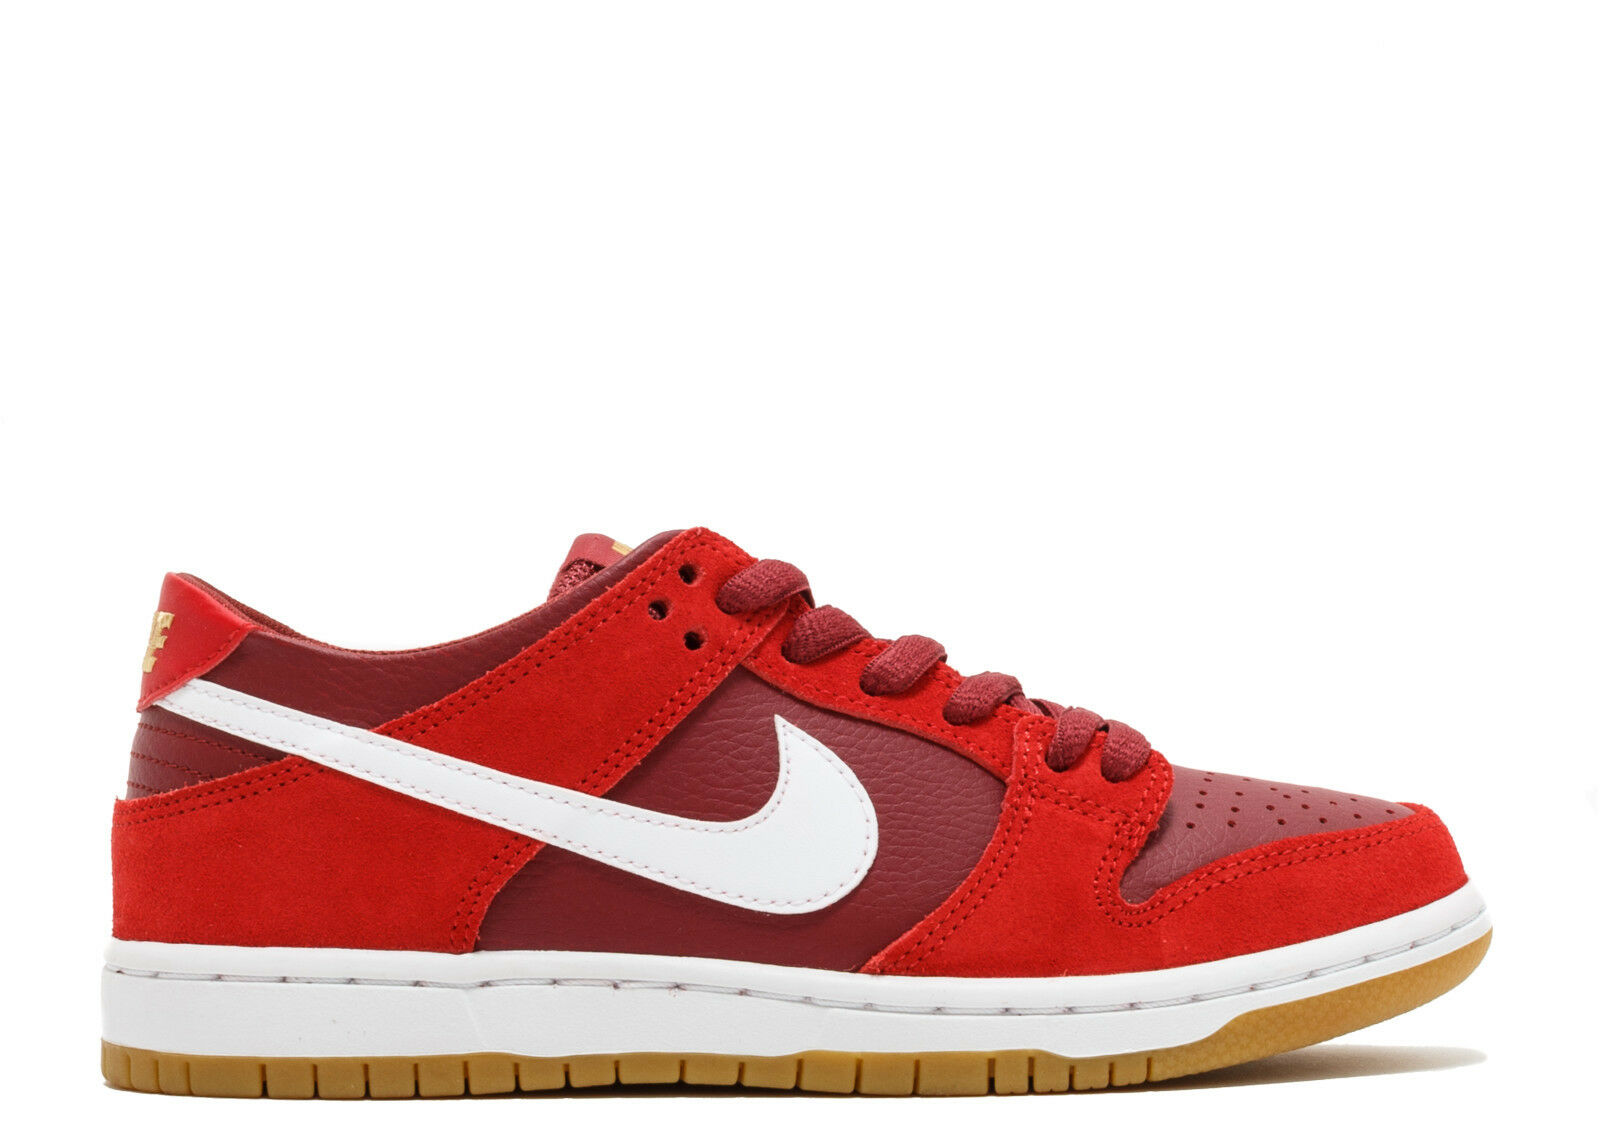 Nike SB ZOOM DUNK LOW PRO Track Red White Cedar 854866-616 (678) Men's Shoes